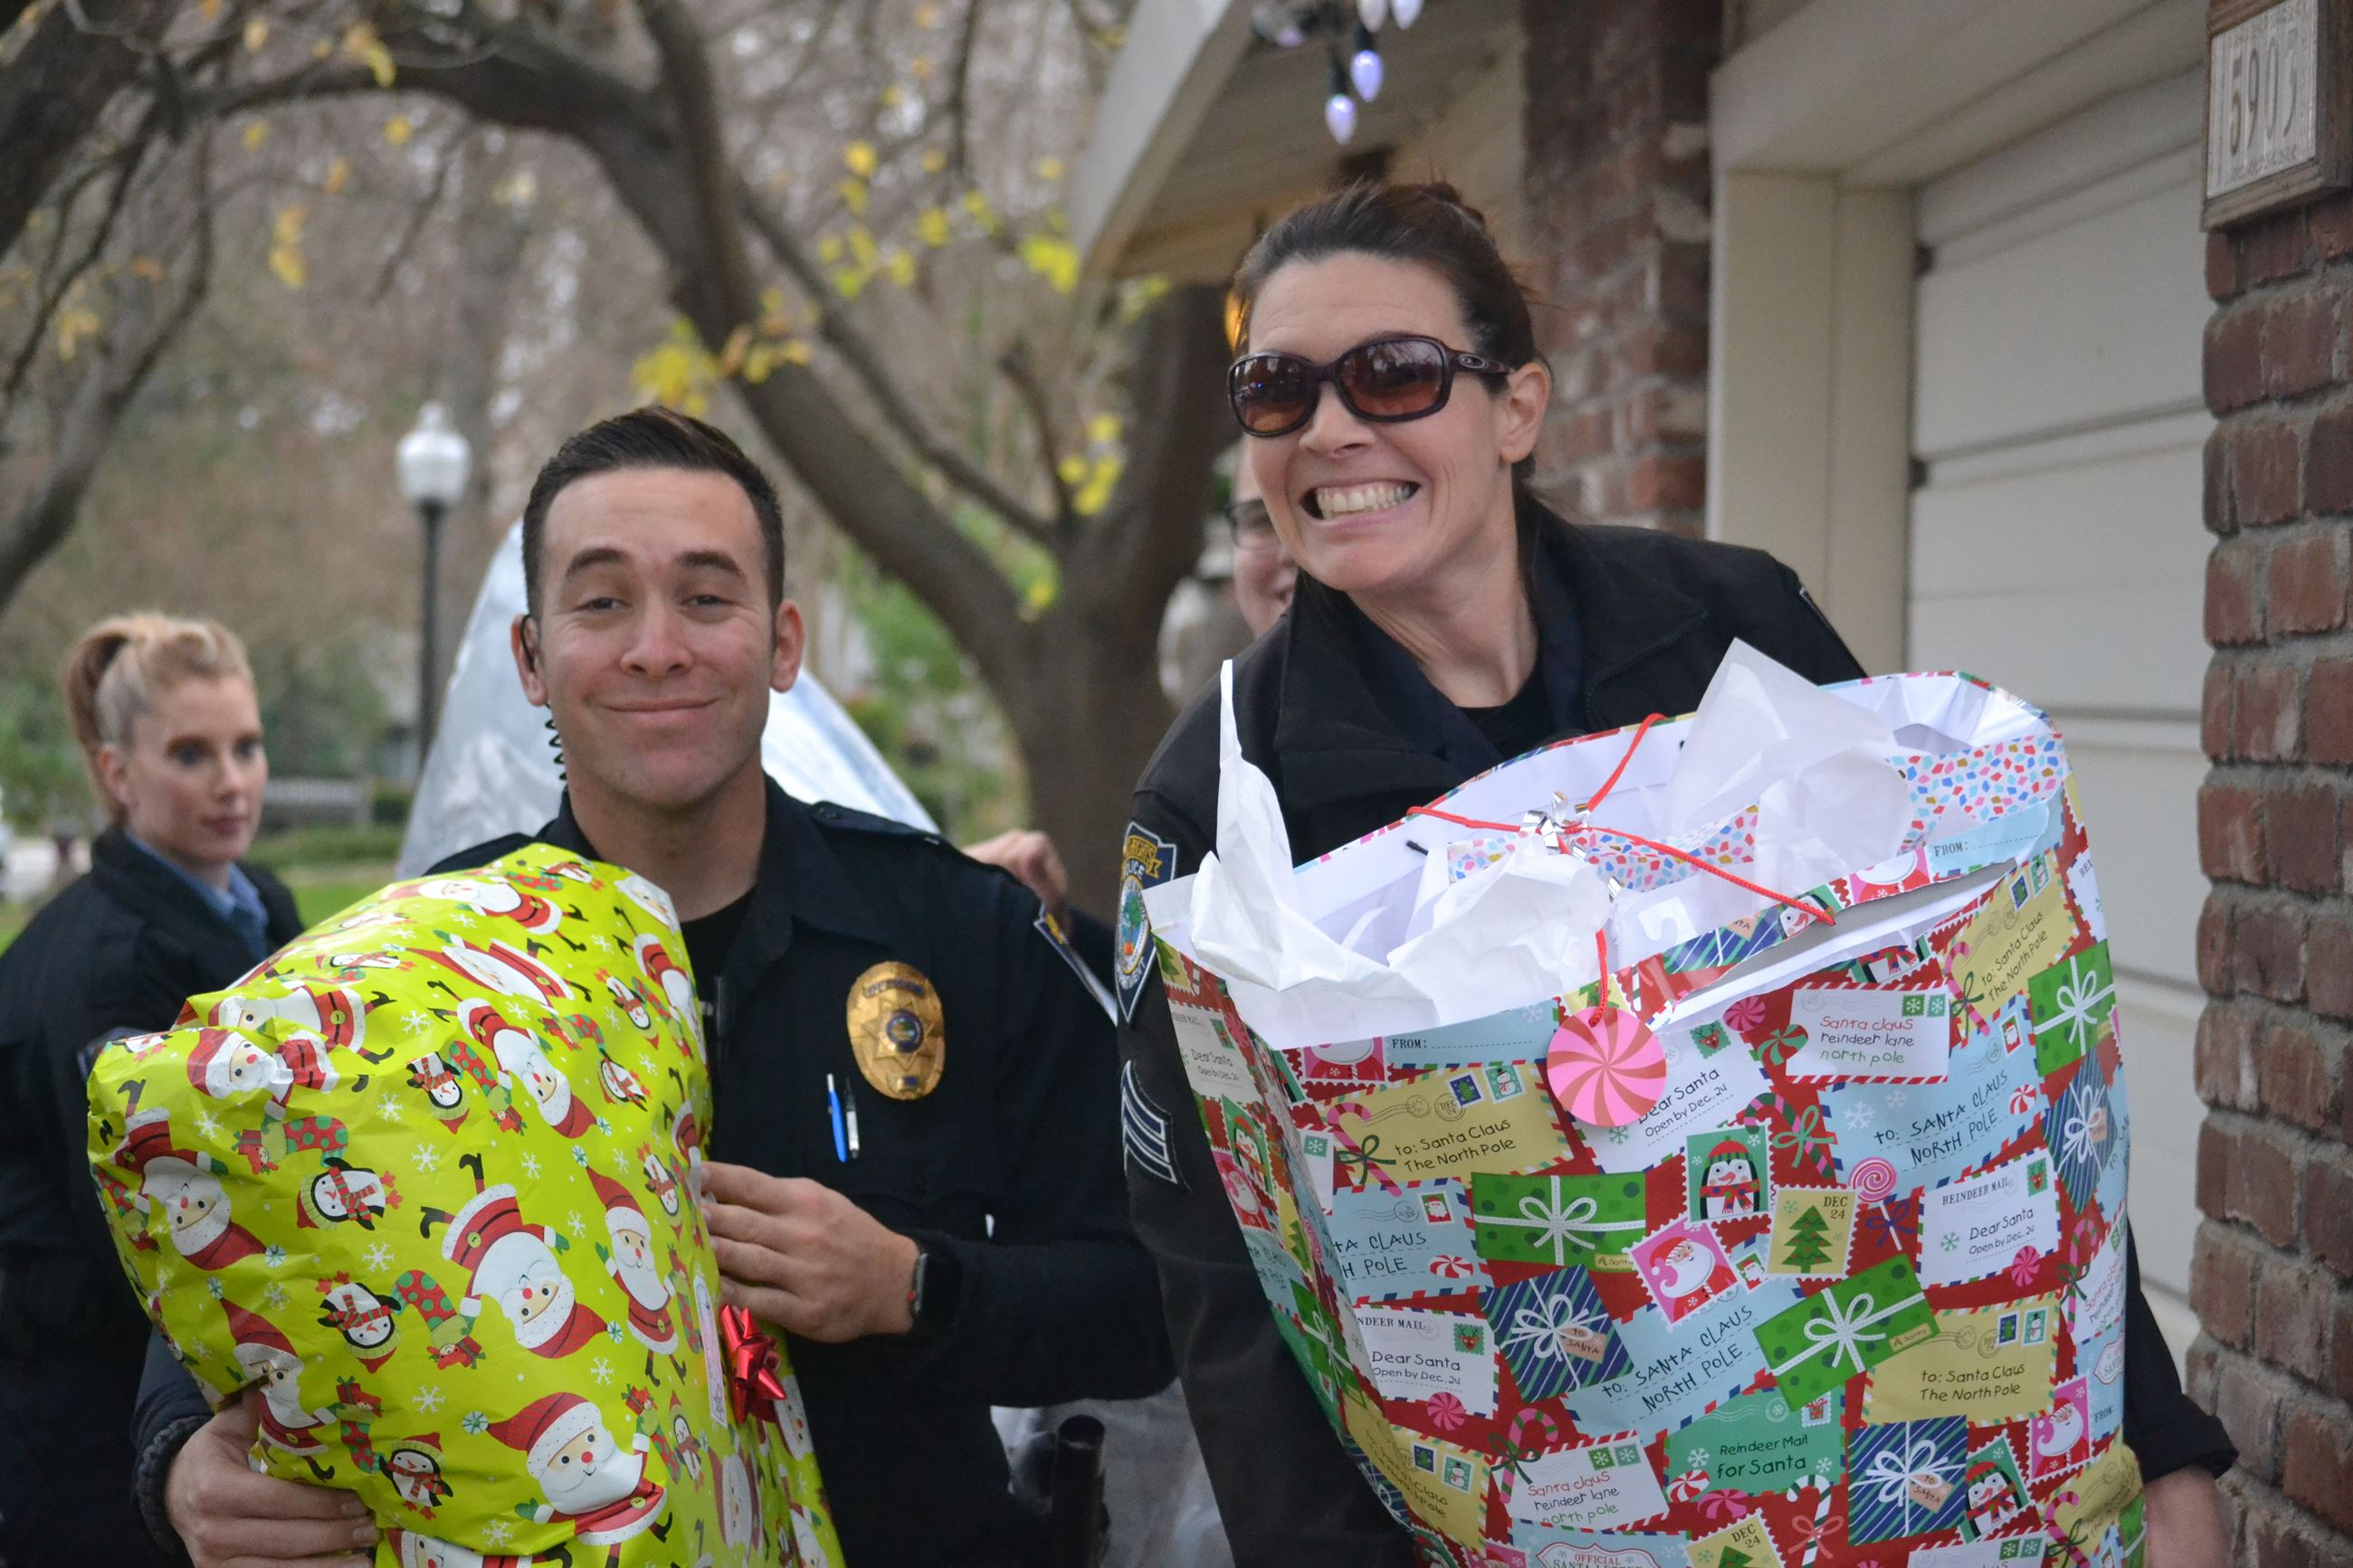 Police personnel delivering gifts